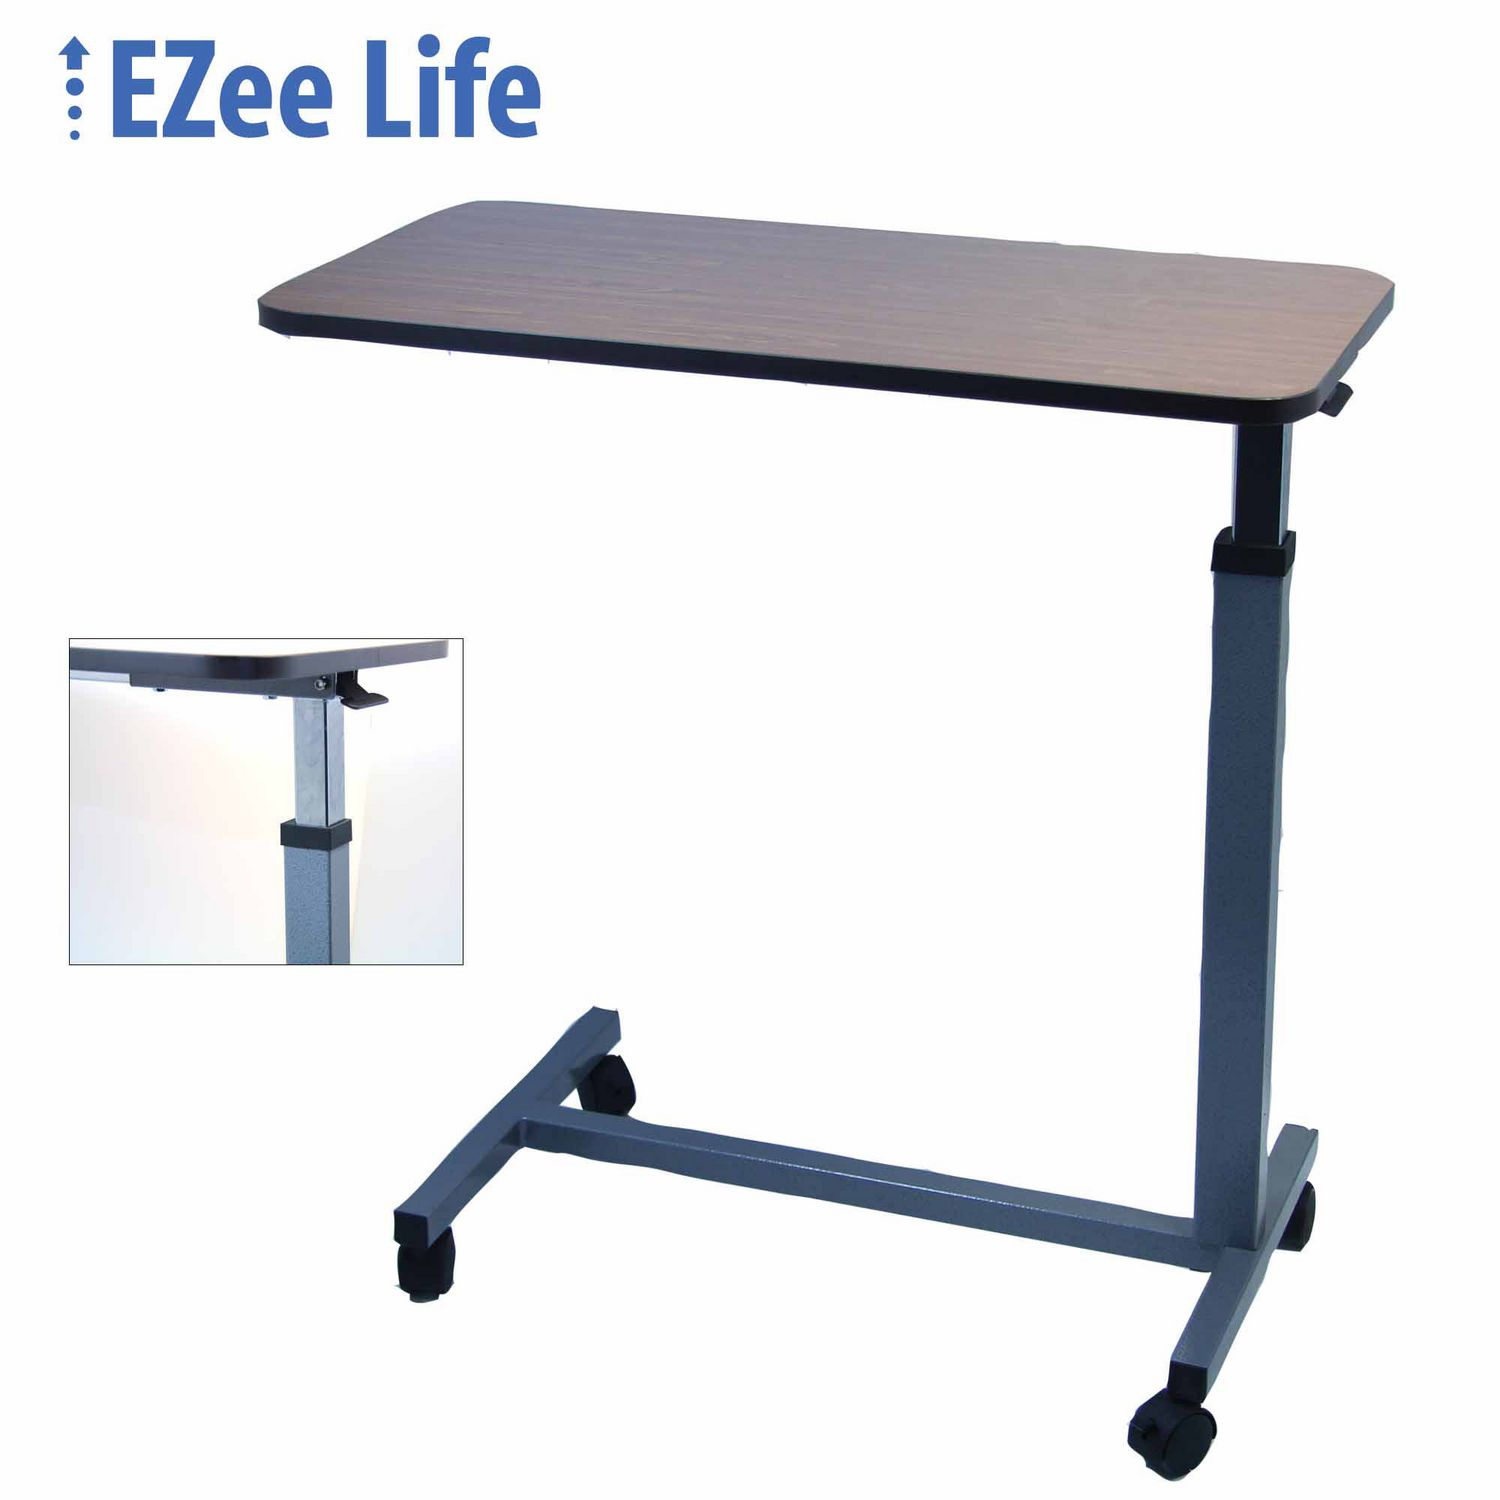 care over overbed table amazon health top co personal drive uk twin deluxe devilbiss healthcare dp with bed